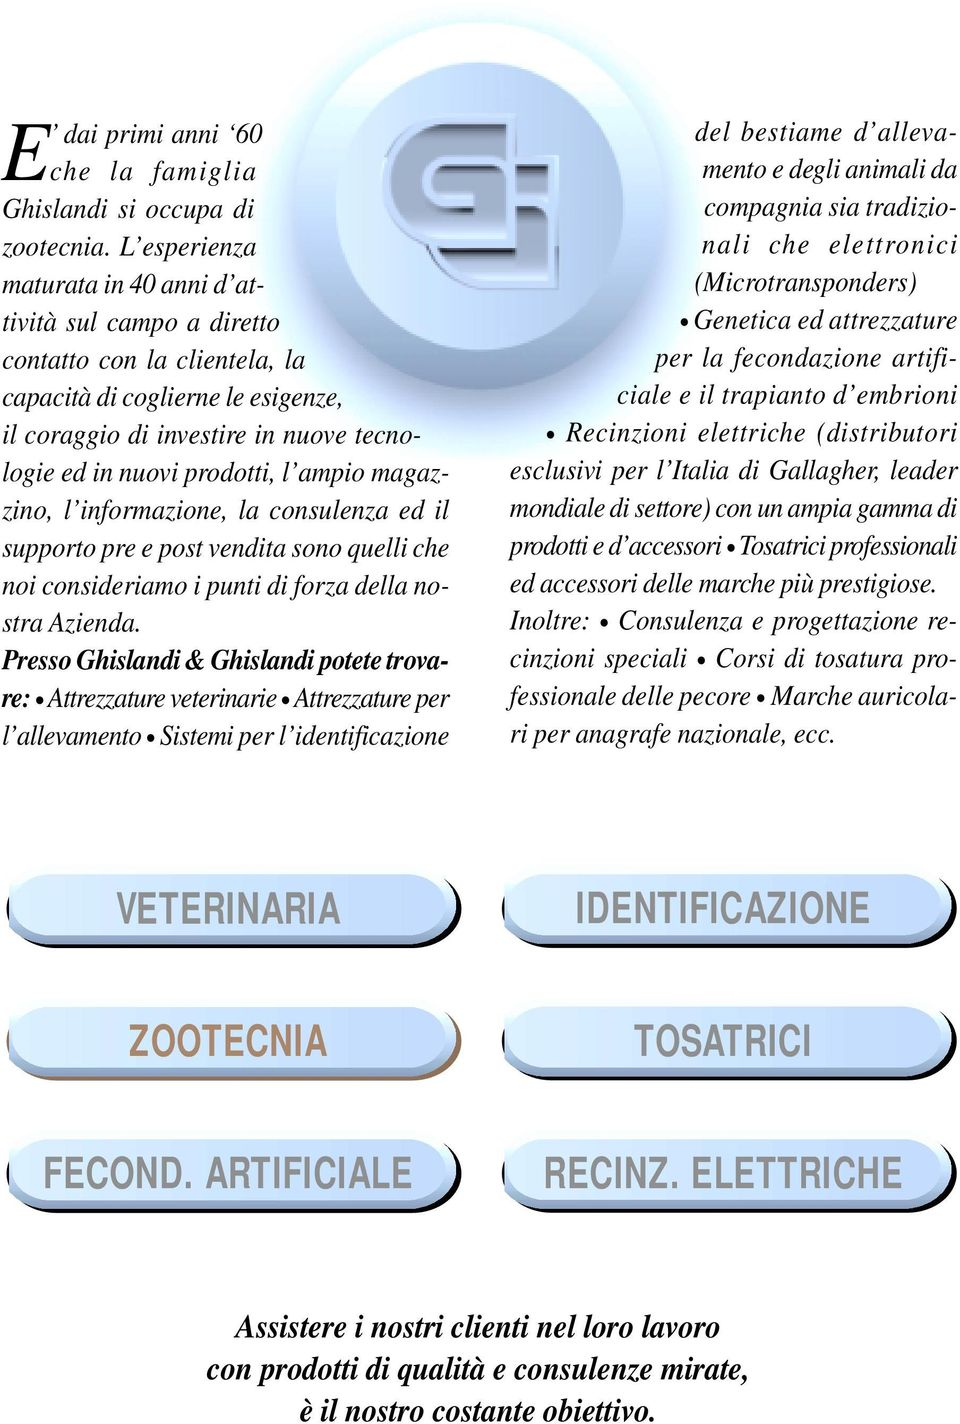 Zootecnia e veterinaria pdf for Gallagher recinzioni elettriche